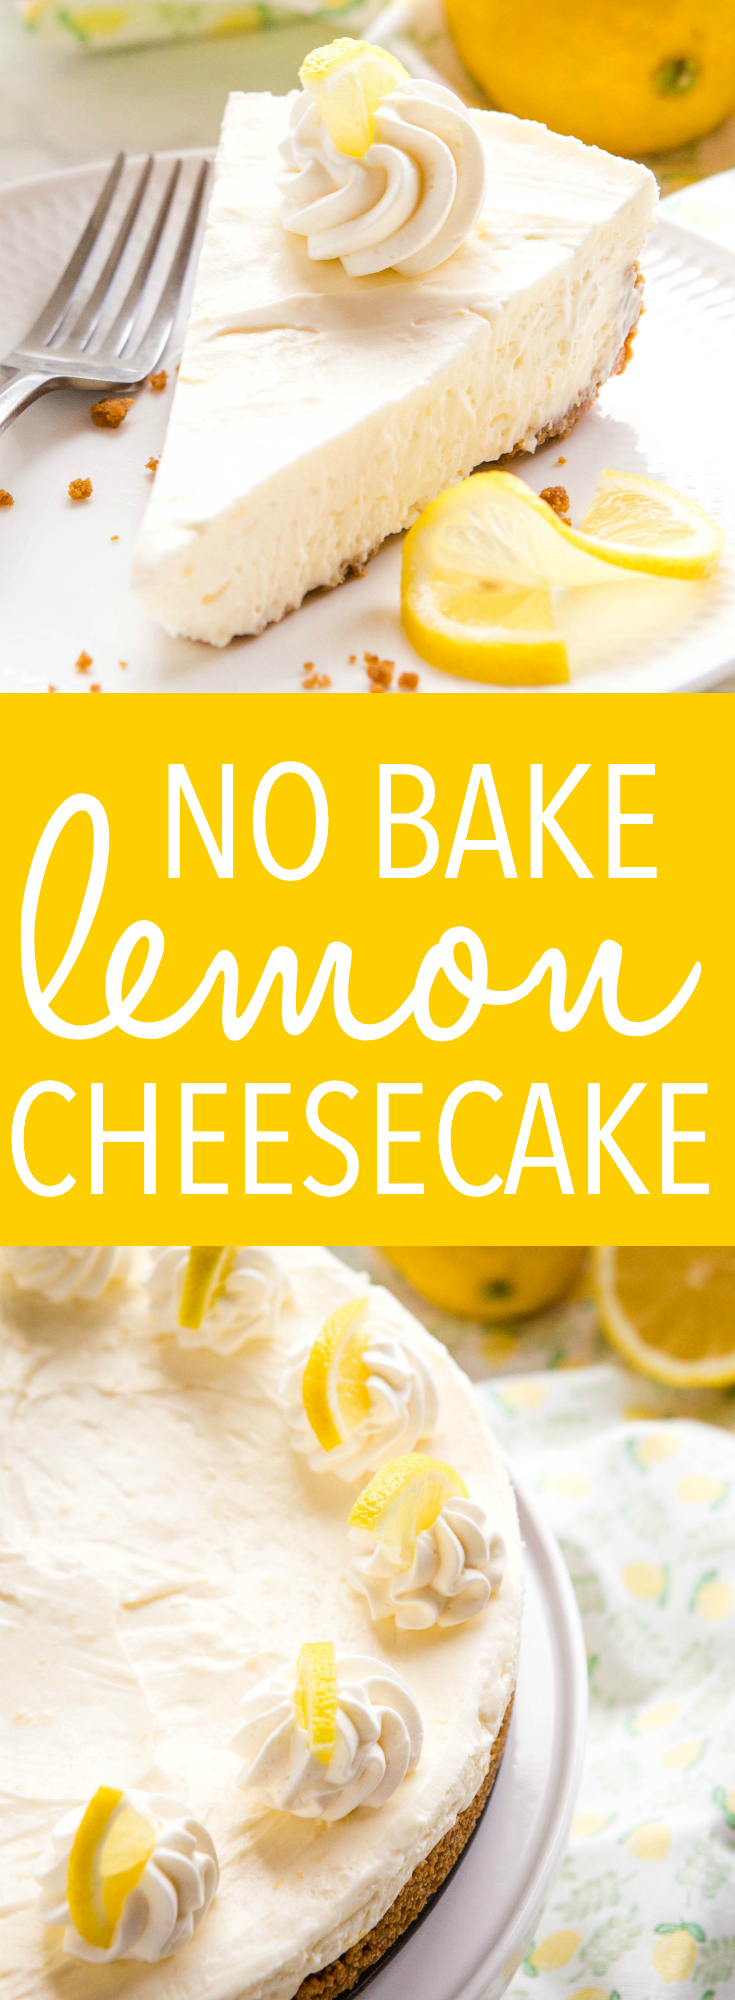 This Easy No Bake Lemon Cheesecake is the perfect easy-to-make cheesecake dessert that's ultra creamy, silky smooth and delicious and packed with fresh lemon! Recipe from thebusybaker.ca! #lemon #cheesecake #dessert #nobake #easydessert #summer via @busybakerblog